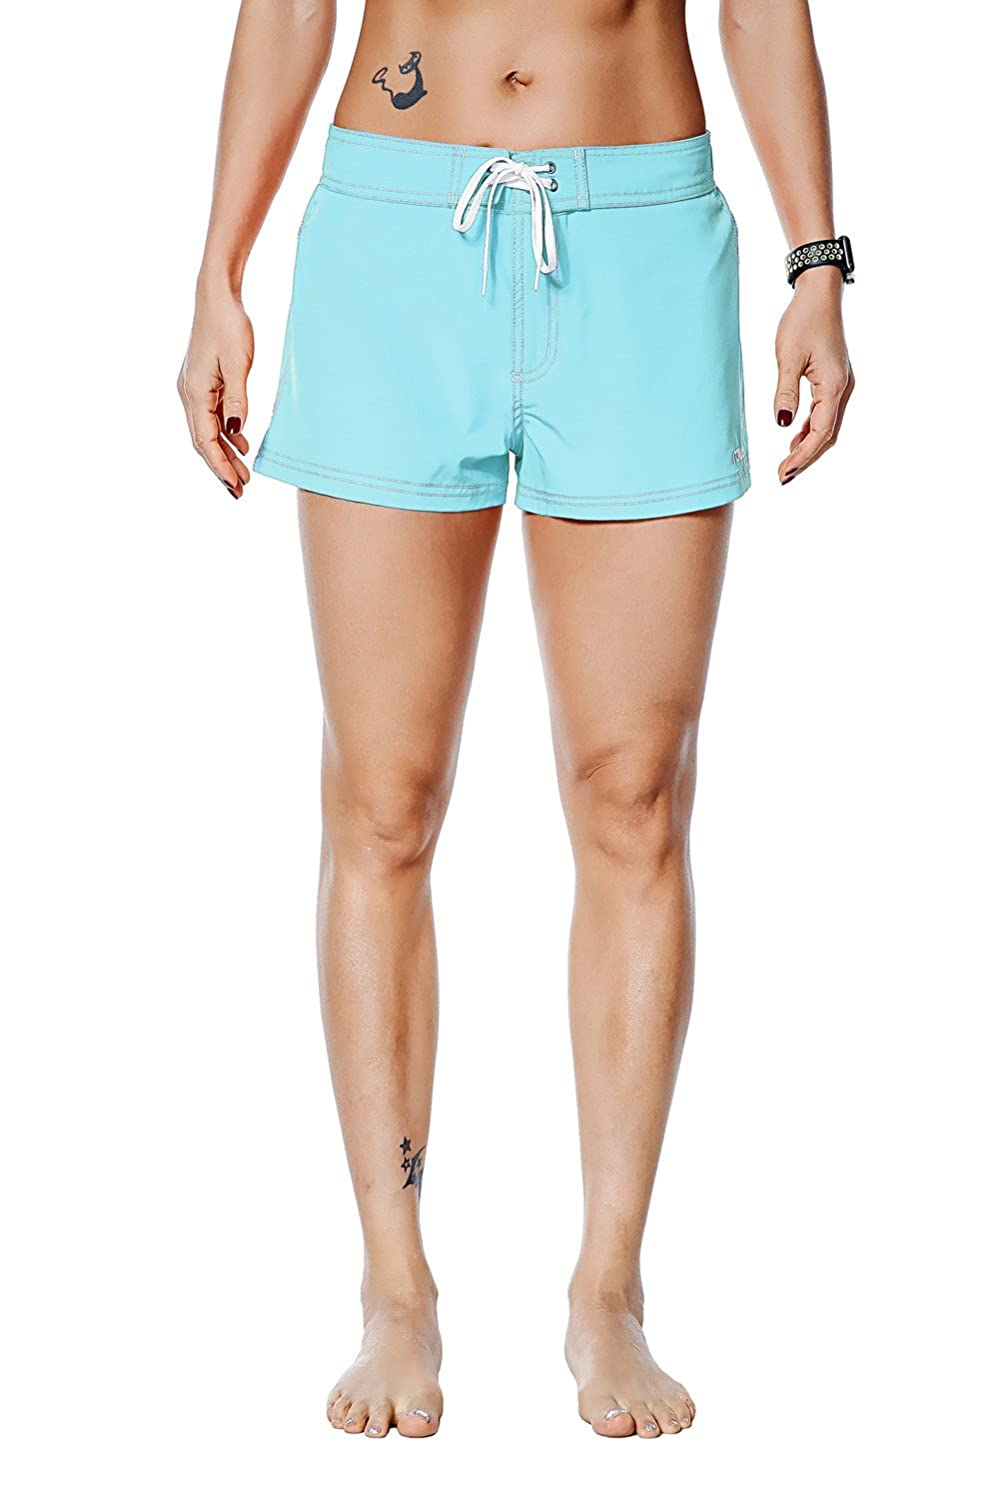 bluee Nonwe Women's Beach Shorts Quick Dry Soild Lightweight